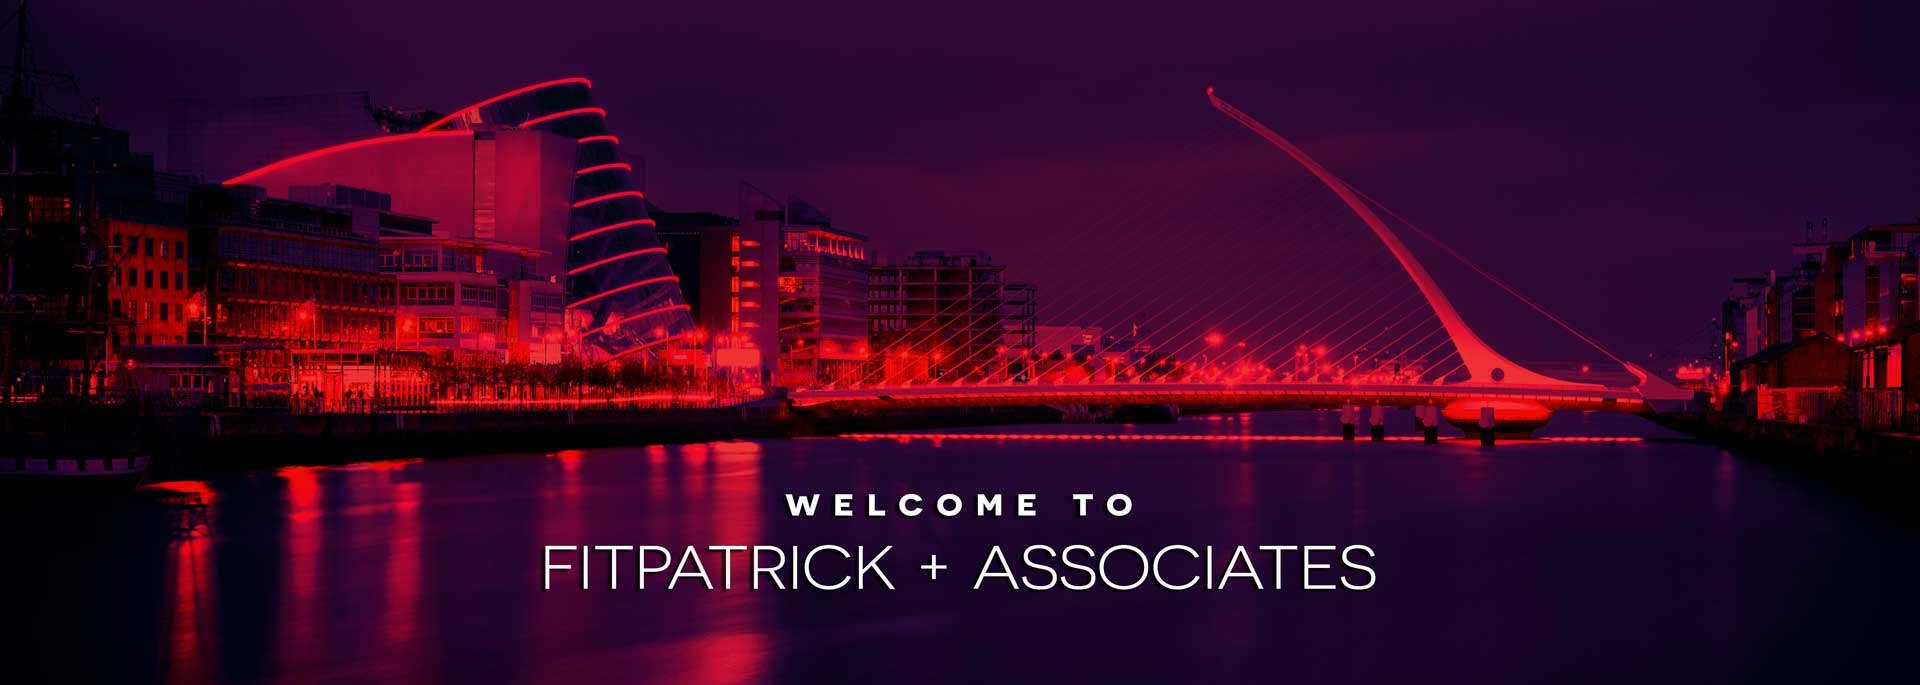 Accountants-Dublin-14---Fitzpatrick-and-Associates-slide-2